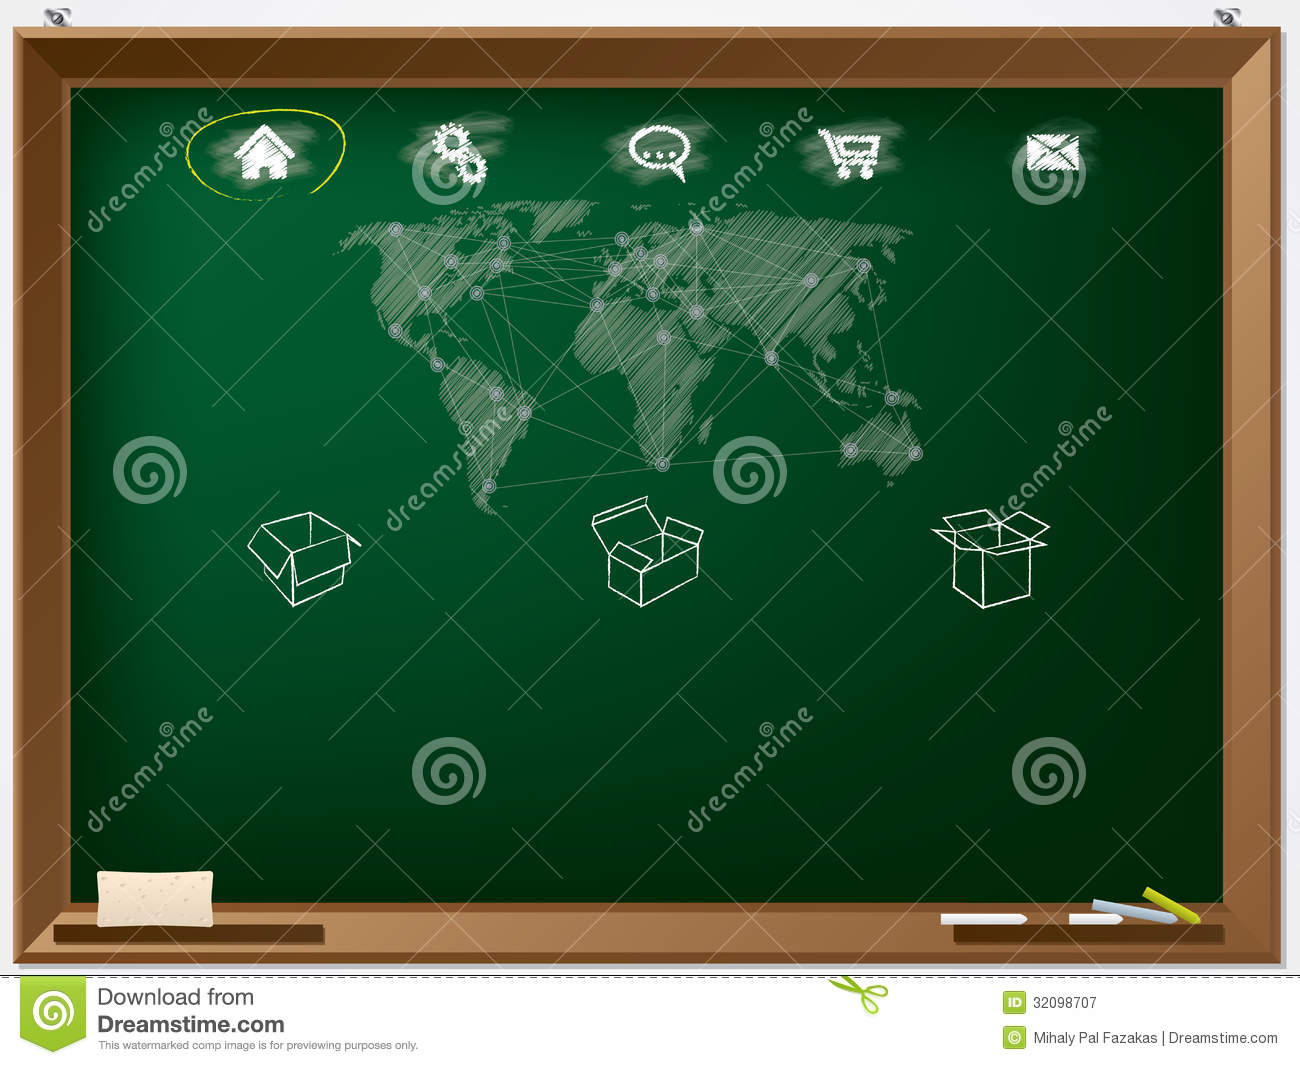 Website Design Template Drawn On Chalkboard Illustration 32098707 ...